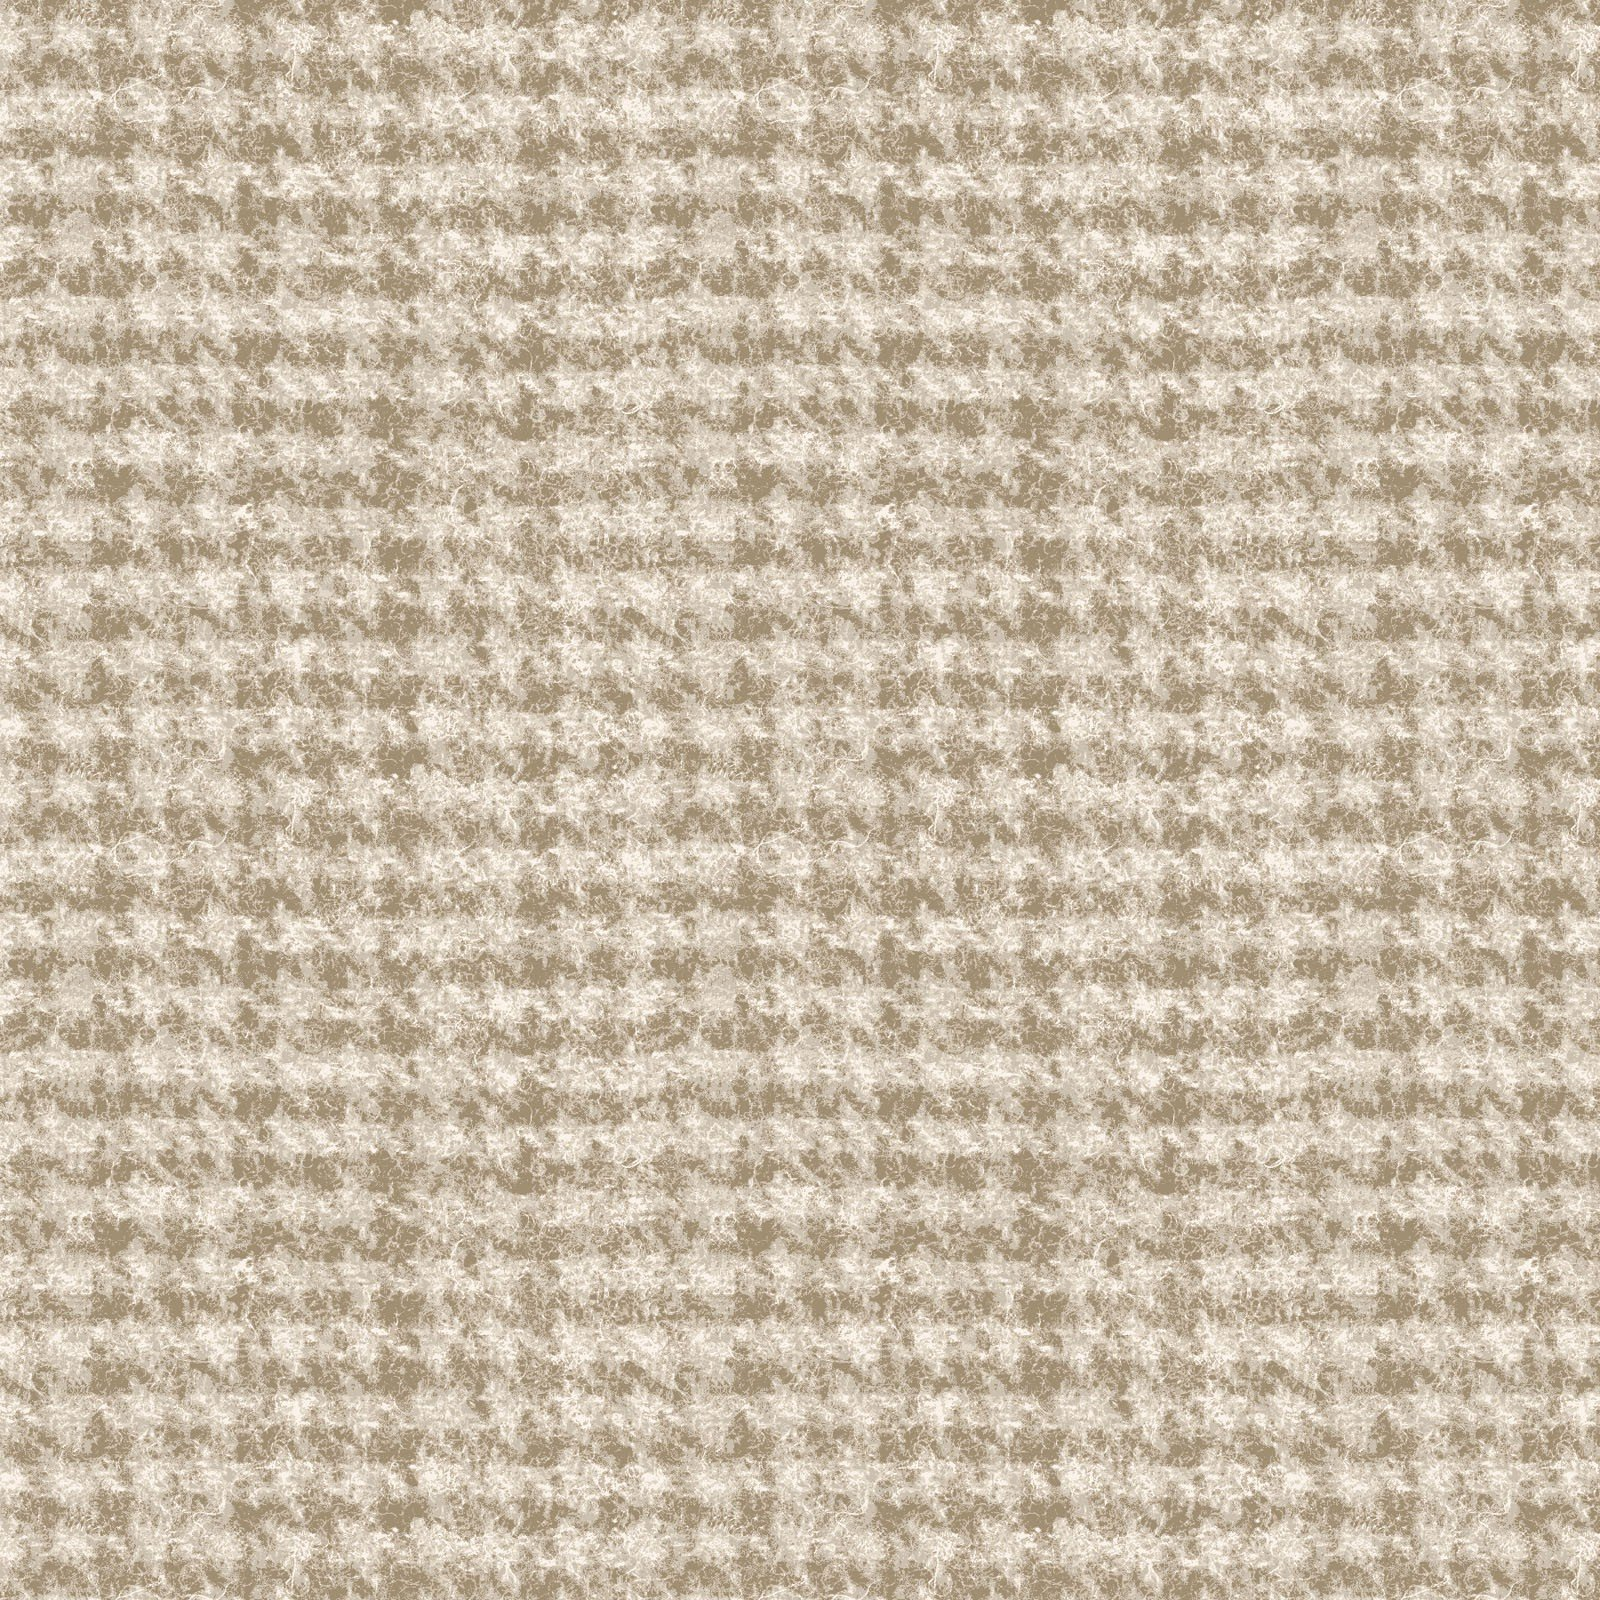 Woolies Flannel - Houndstooth - Light Tan